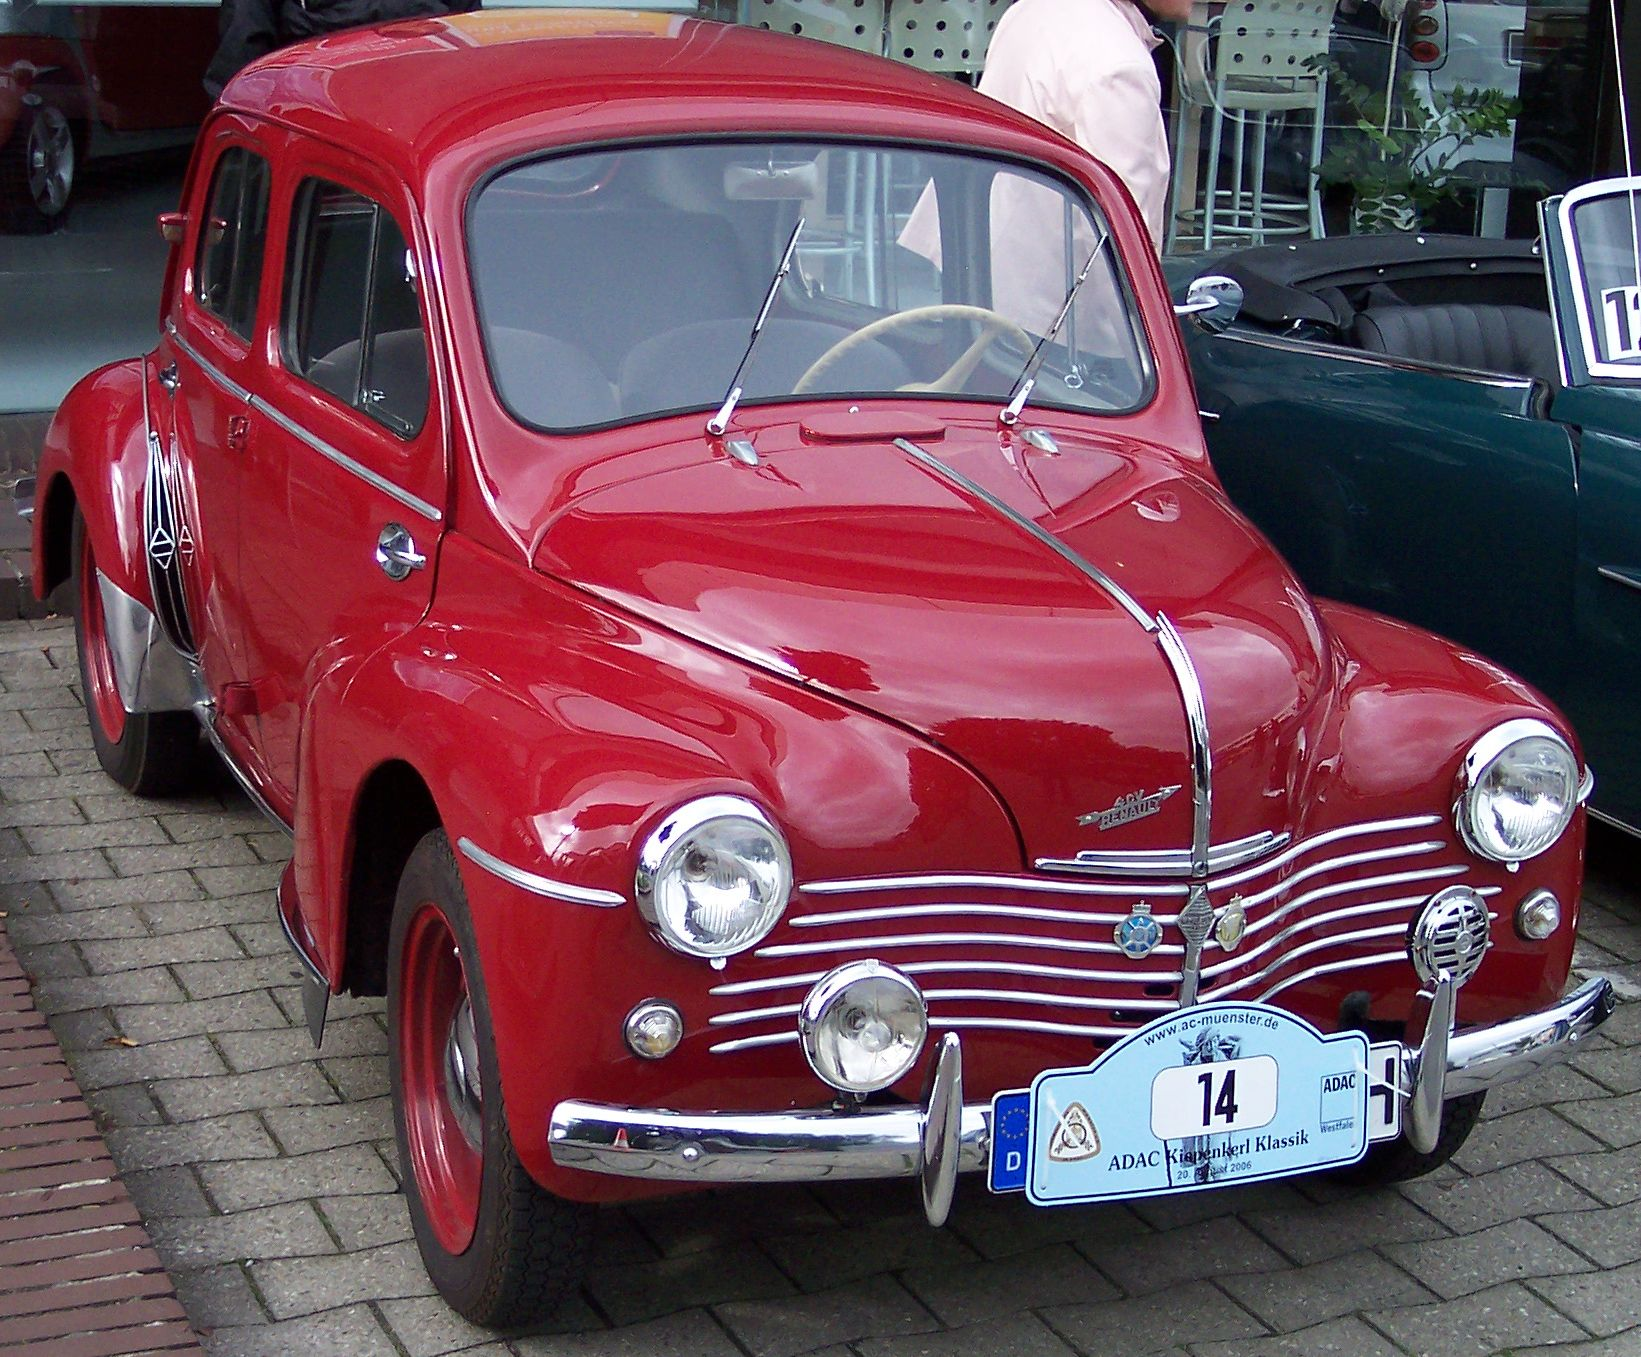 rouge avd Renault 4CV red vr